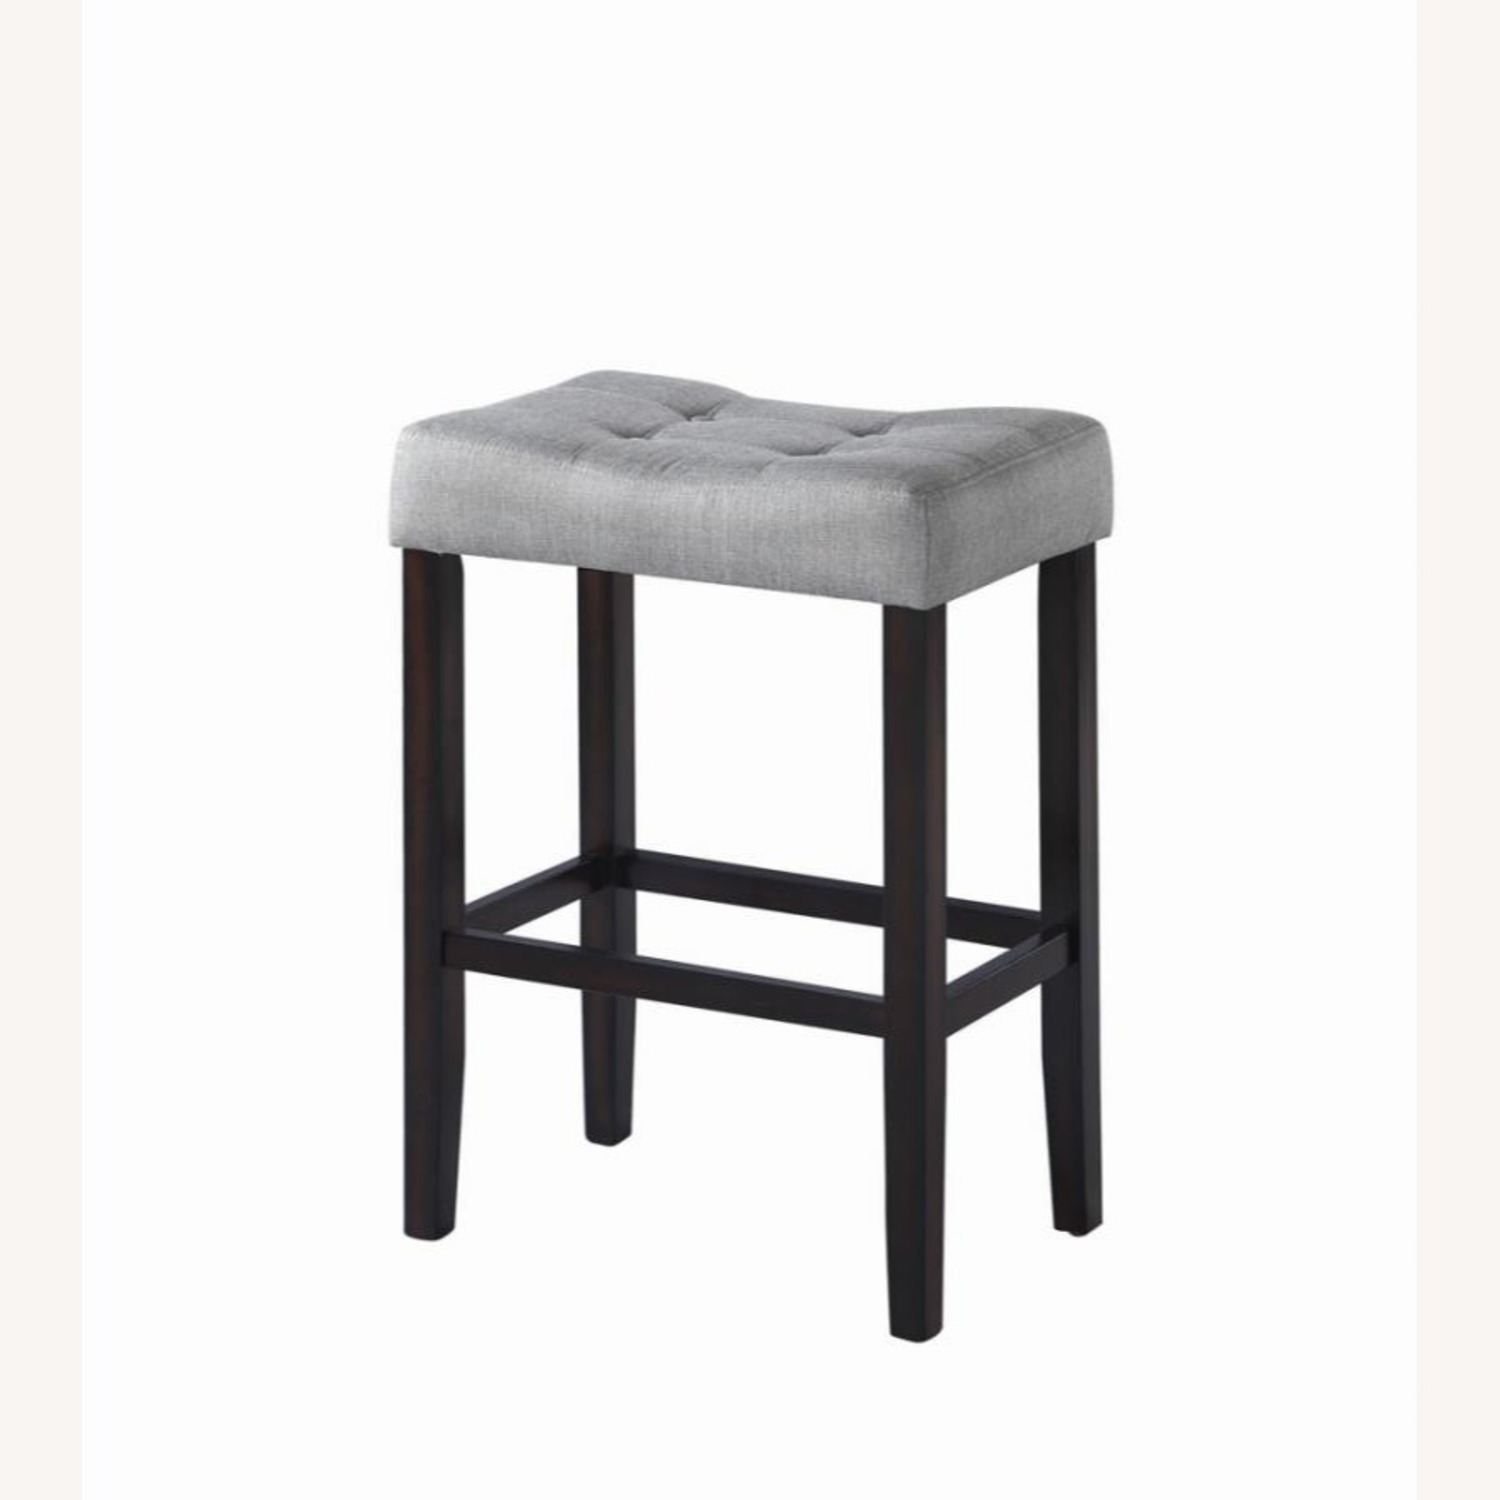 Bar Stool In Grey Fabric W/ Tufted Seating - image-0